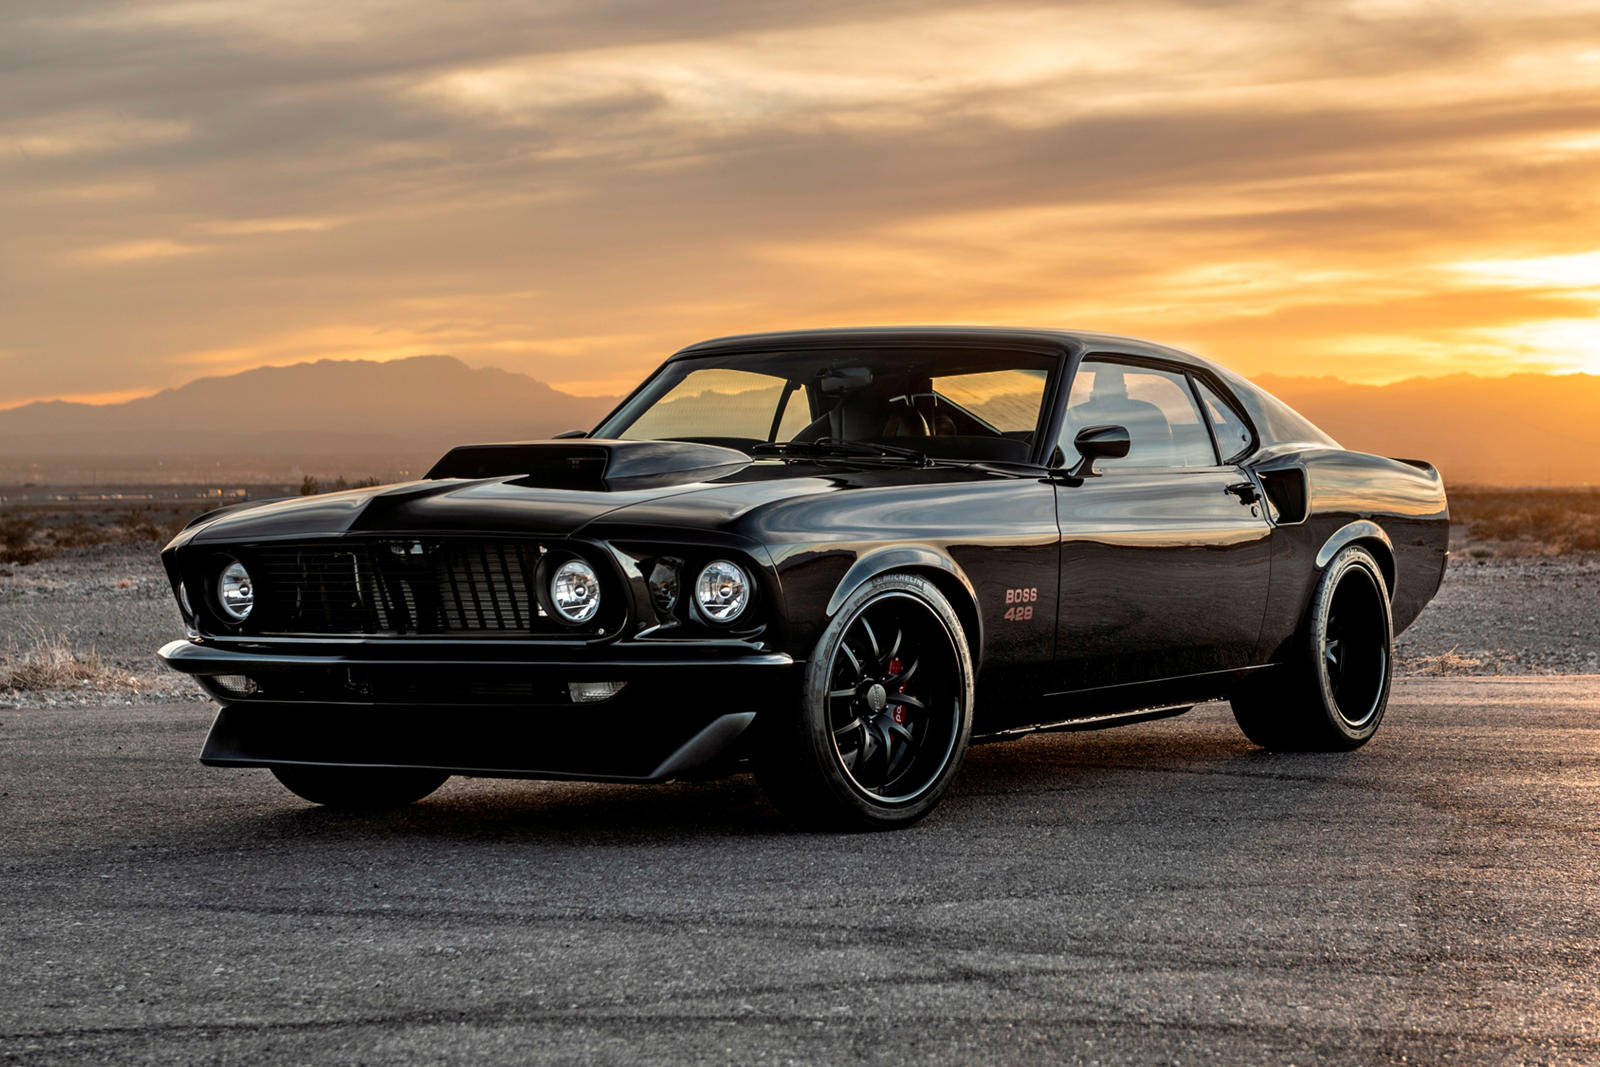 Ford Mustang Boss 429 Is Back In Production With 815 Hp